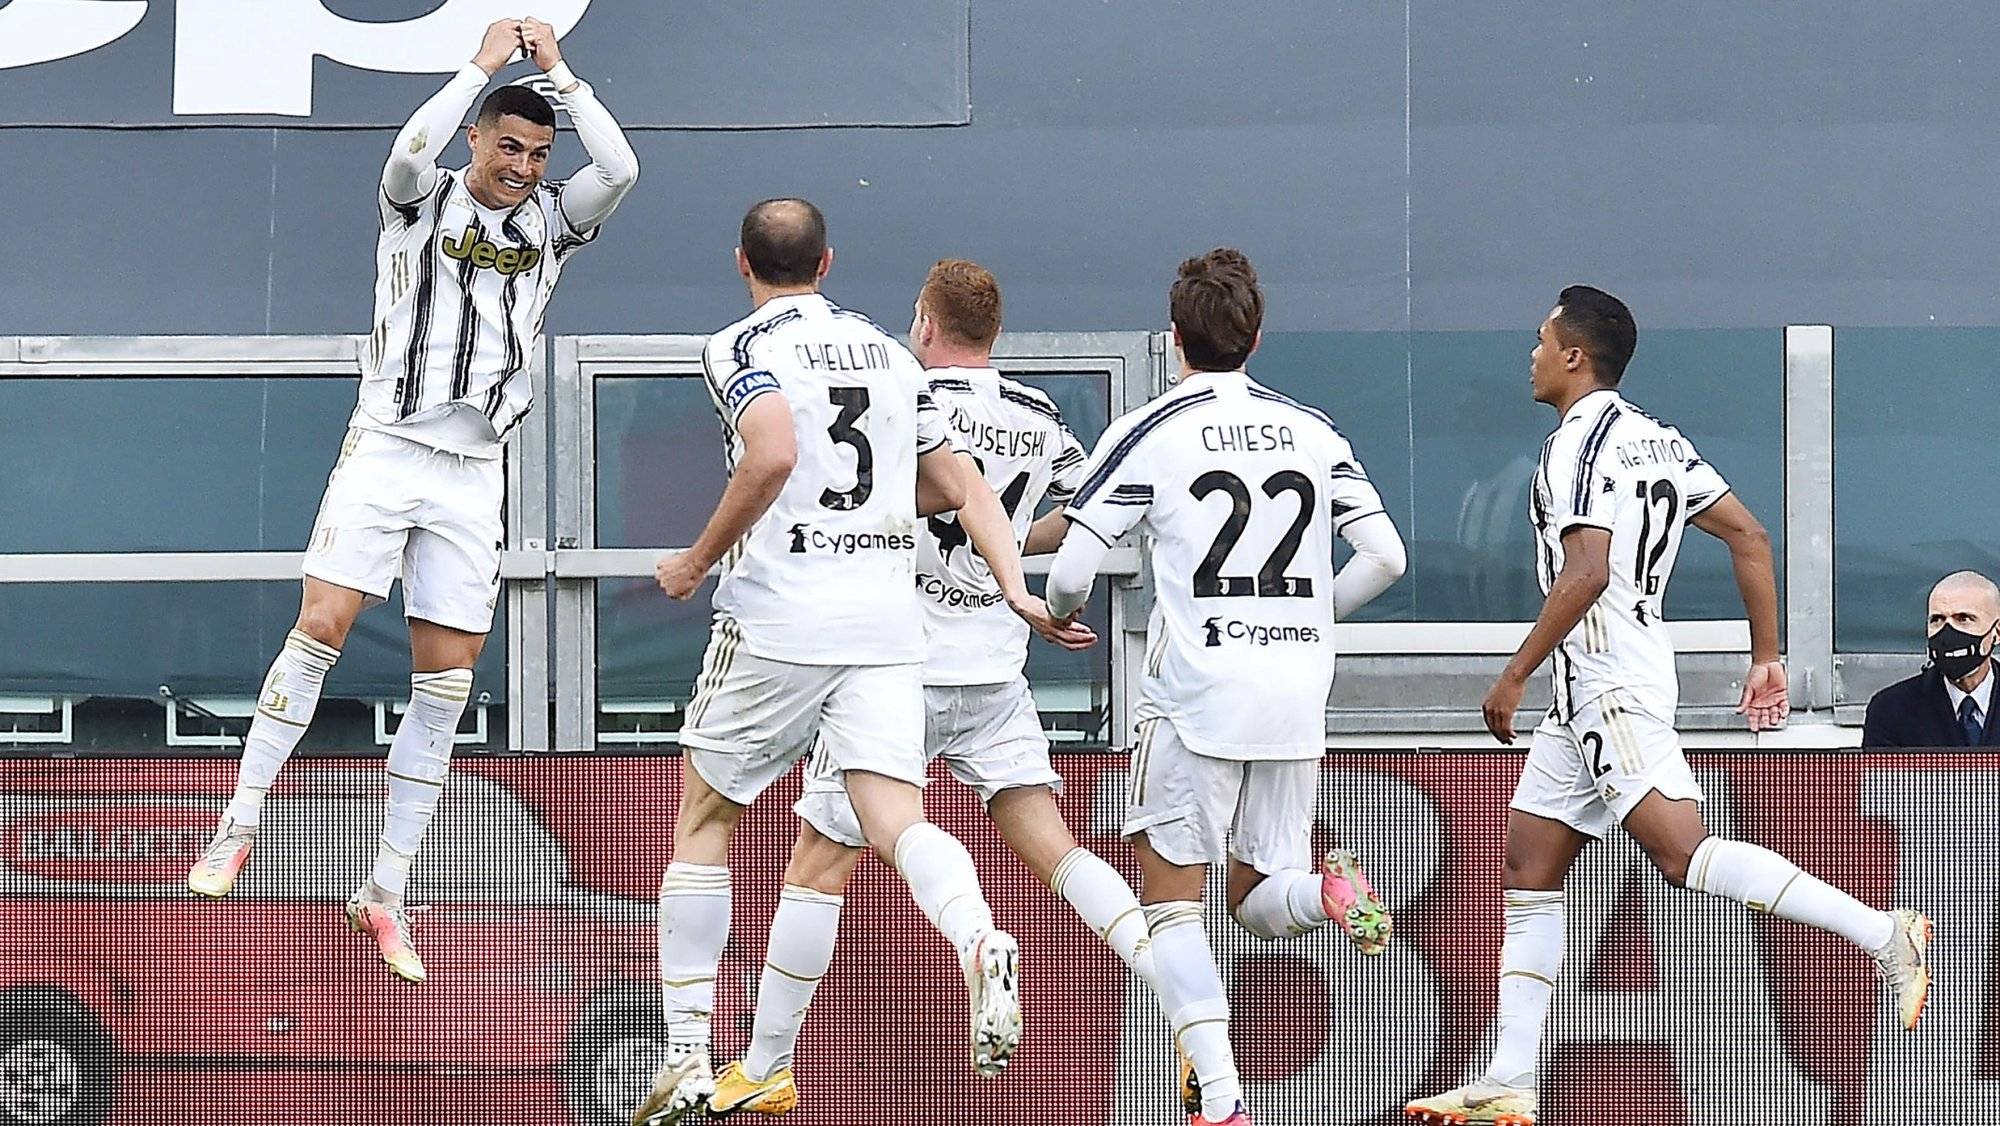 epa09202383 Juventus' Cristiano Ronaldo (L) celebrates with teammates after scoring the 1-0 goal during the Italian Serie A soccer match Juventus FC vs FC Inter at the Allianz Stadium in Turin, Italy, 15 May 2021.  EPA/ALESSANDRO DI MARCO